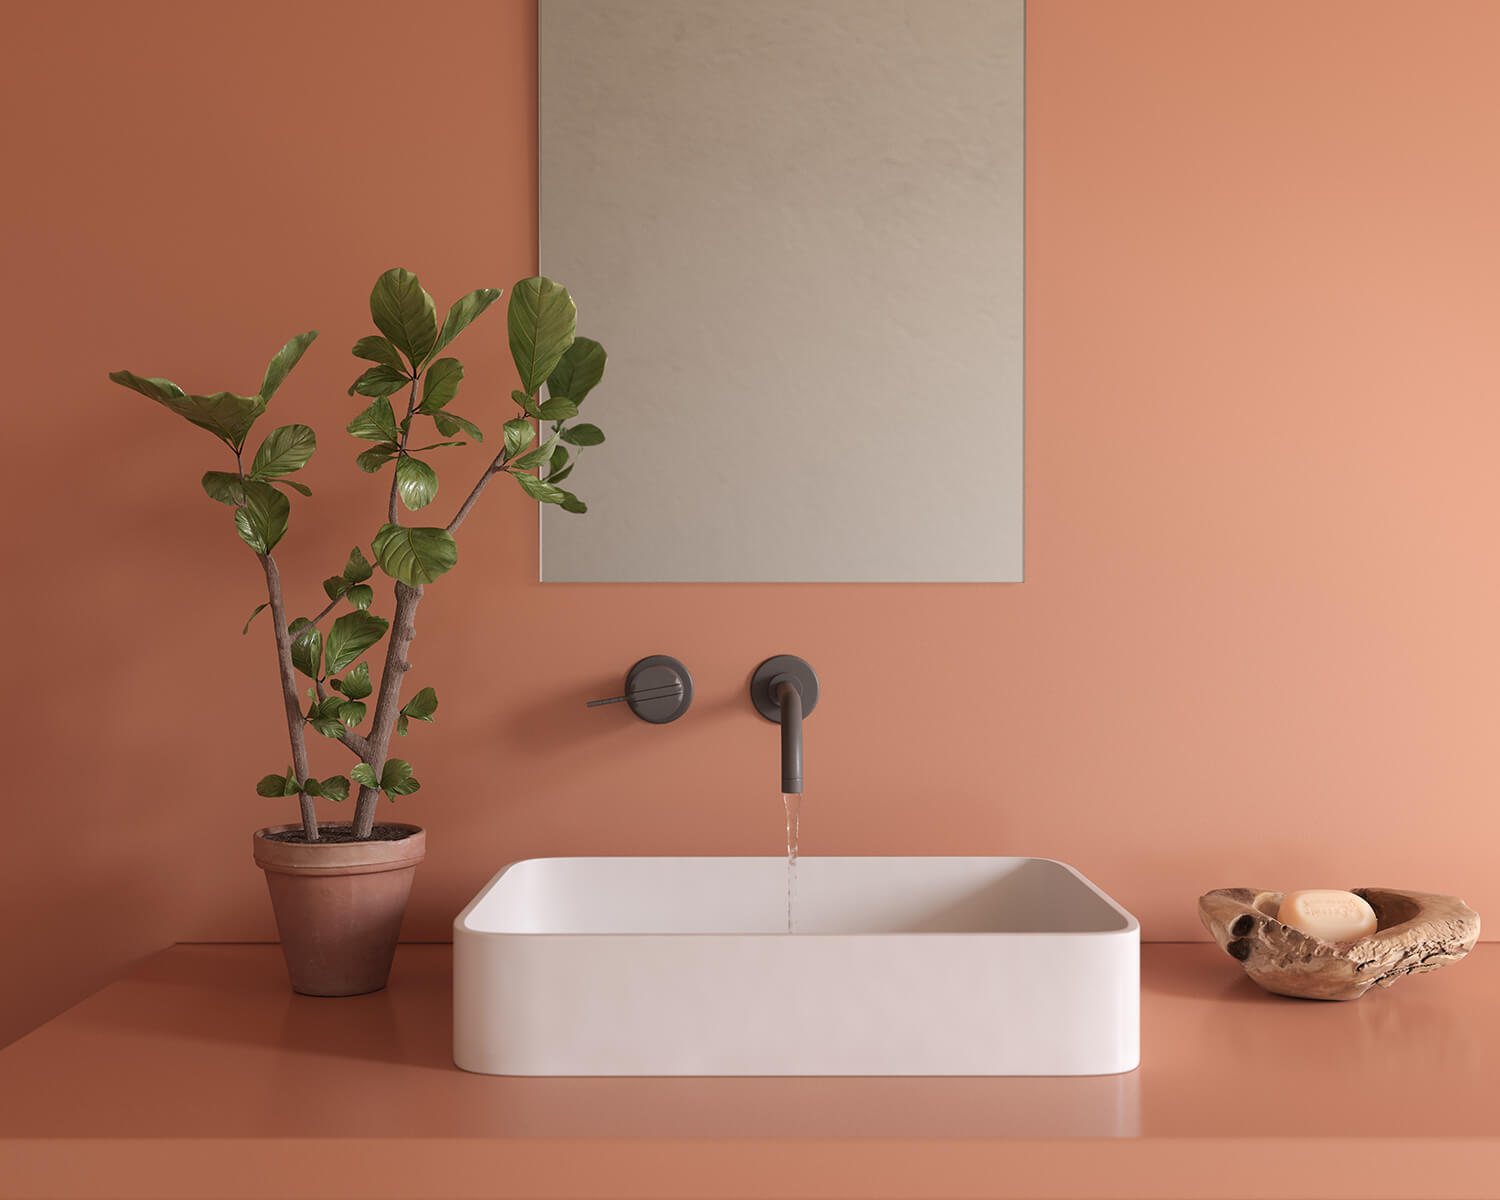 Red Silestone countertop with white sink and black faucet, with plant in a terracotta pot